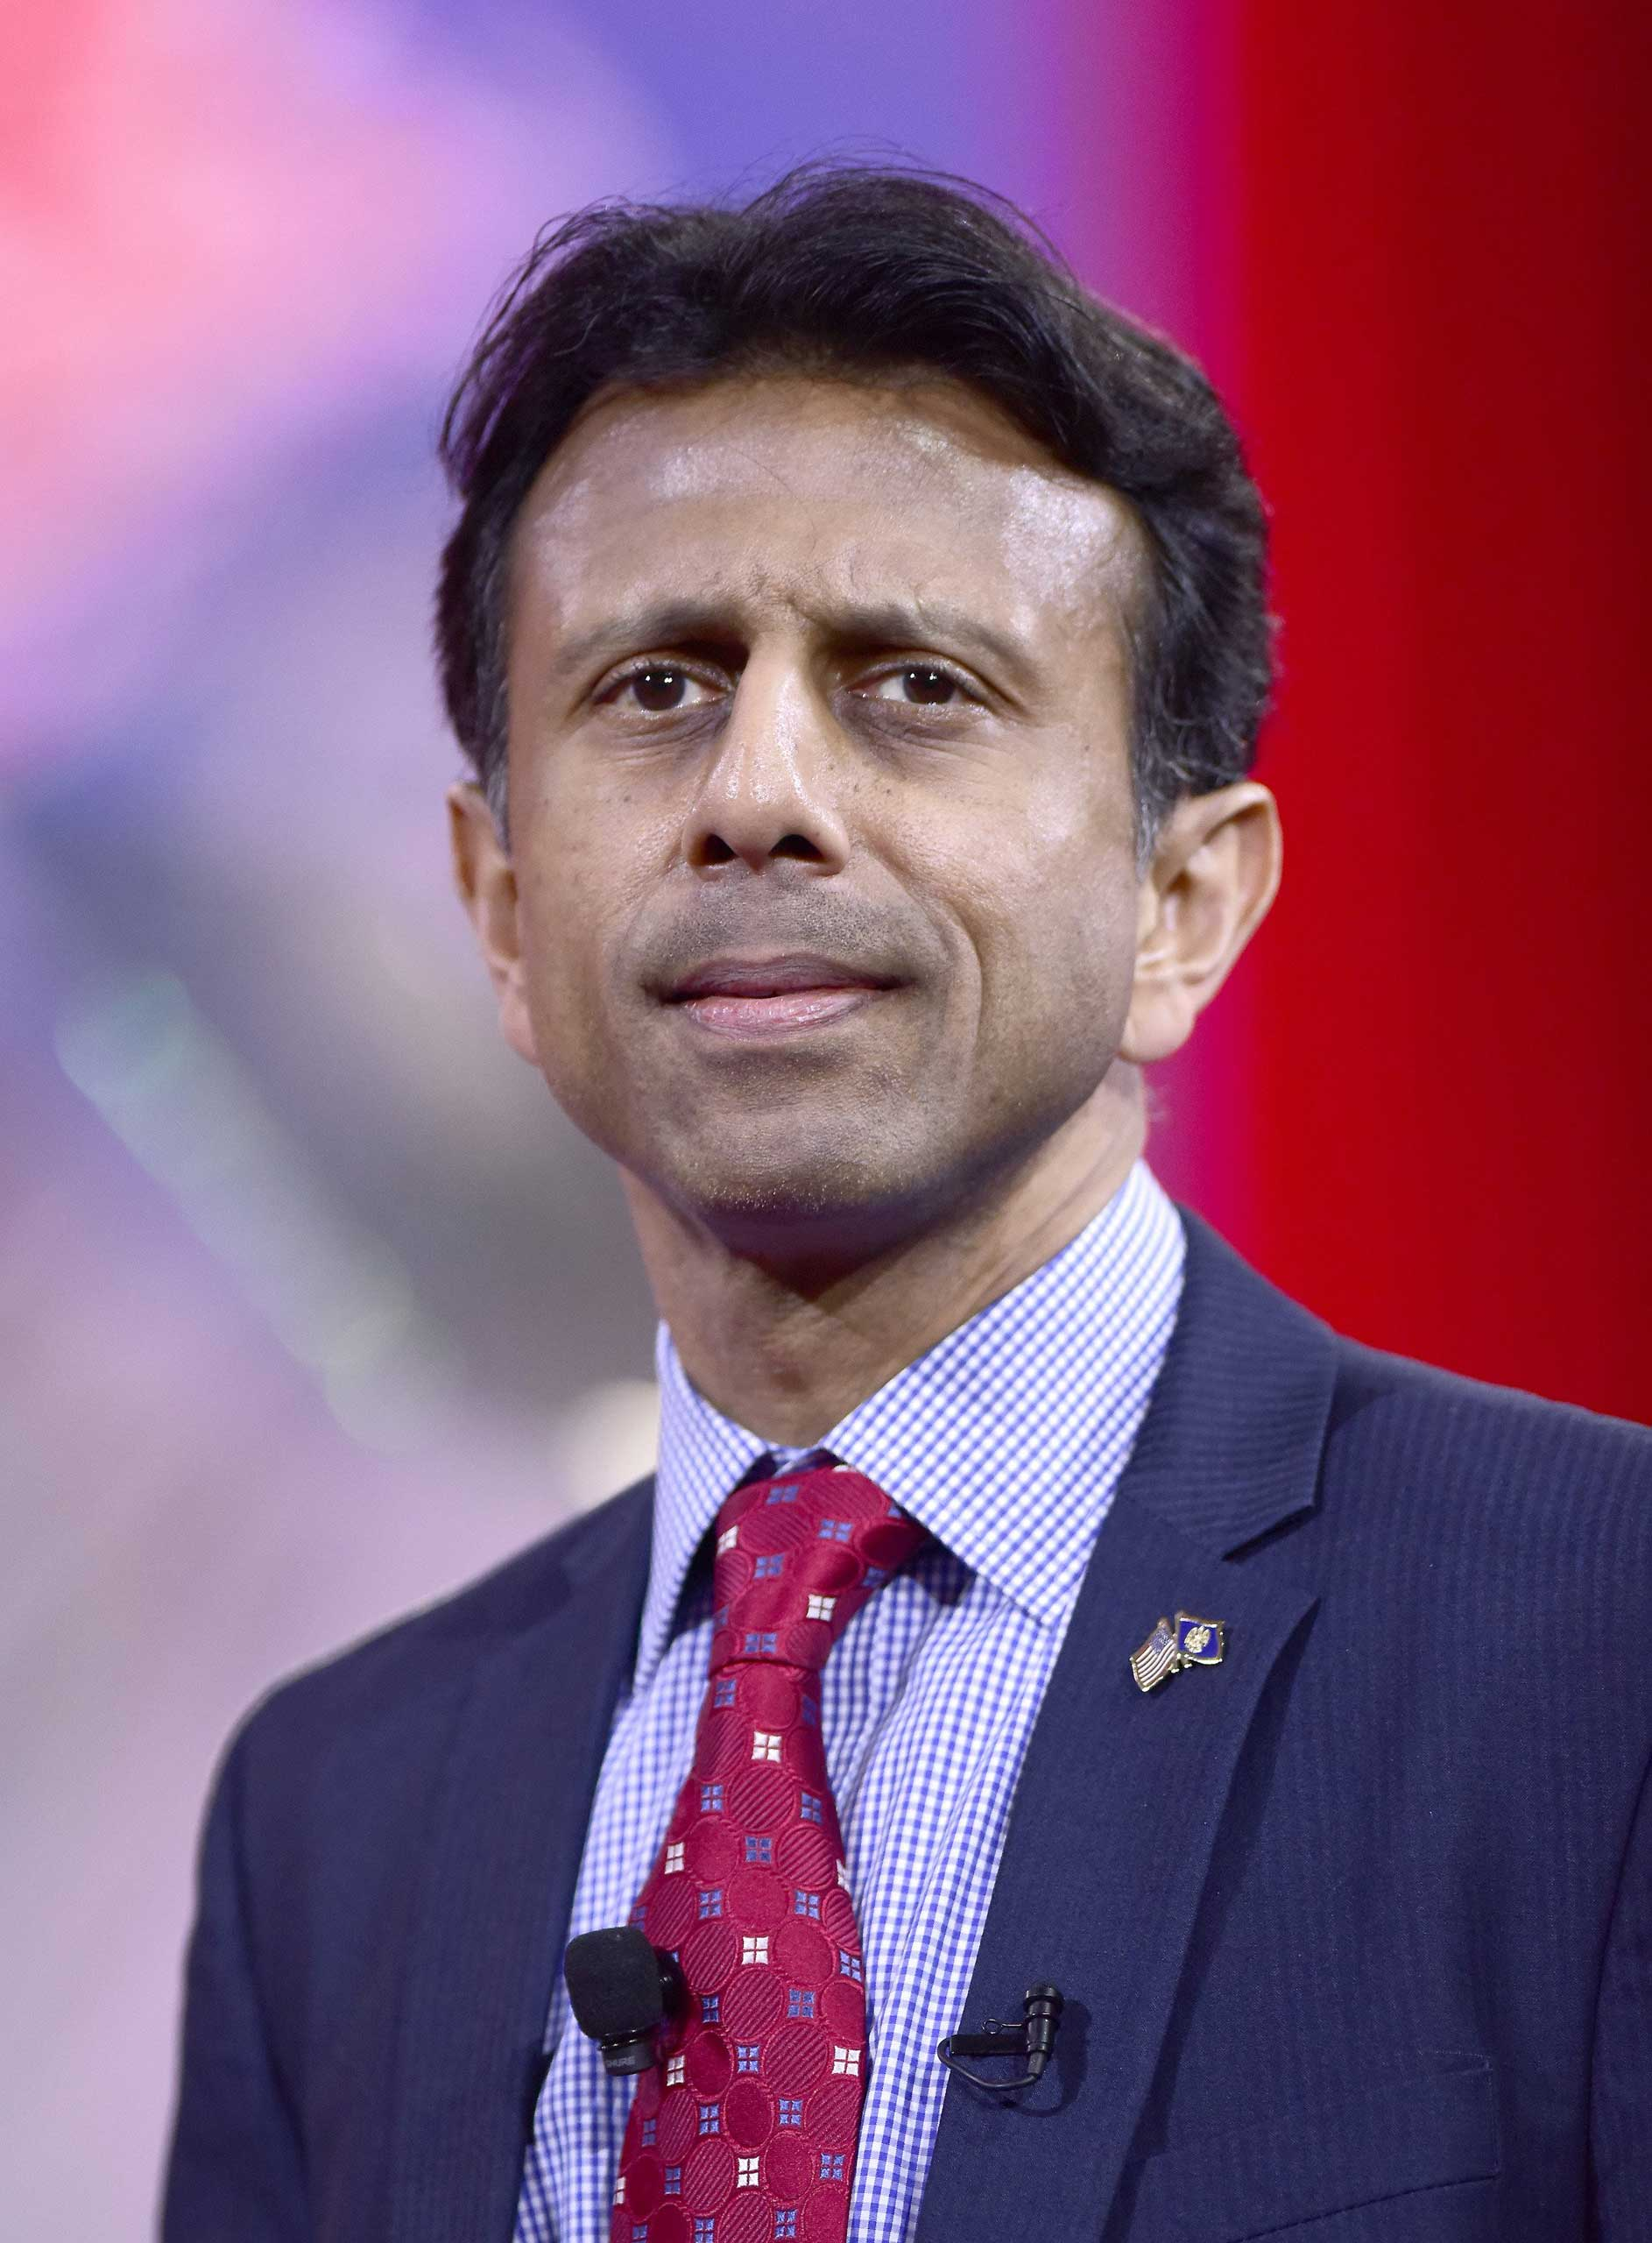 Louisiana Governor Bobby Jindal speaks at the Conservative Political Action Conference (CPAC) in National Harbor, Md. on Feb. 26, 2015.